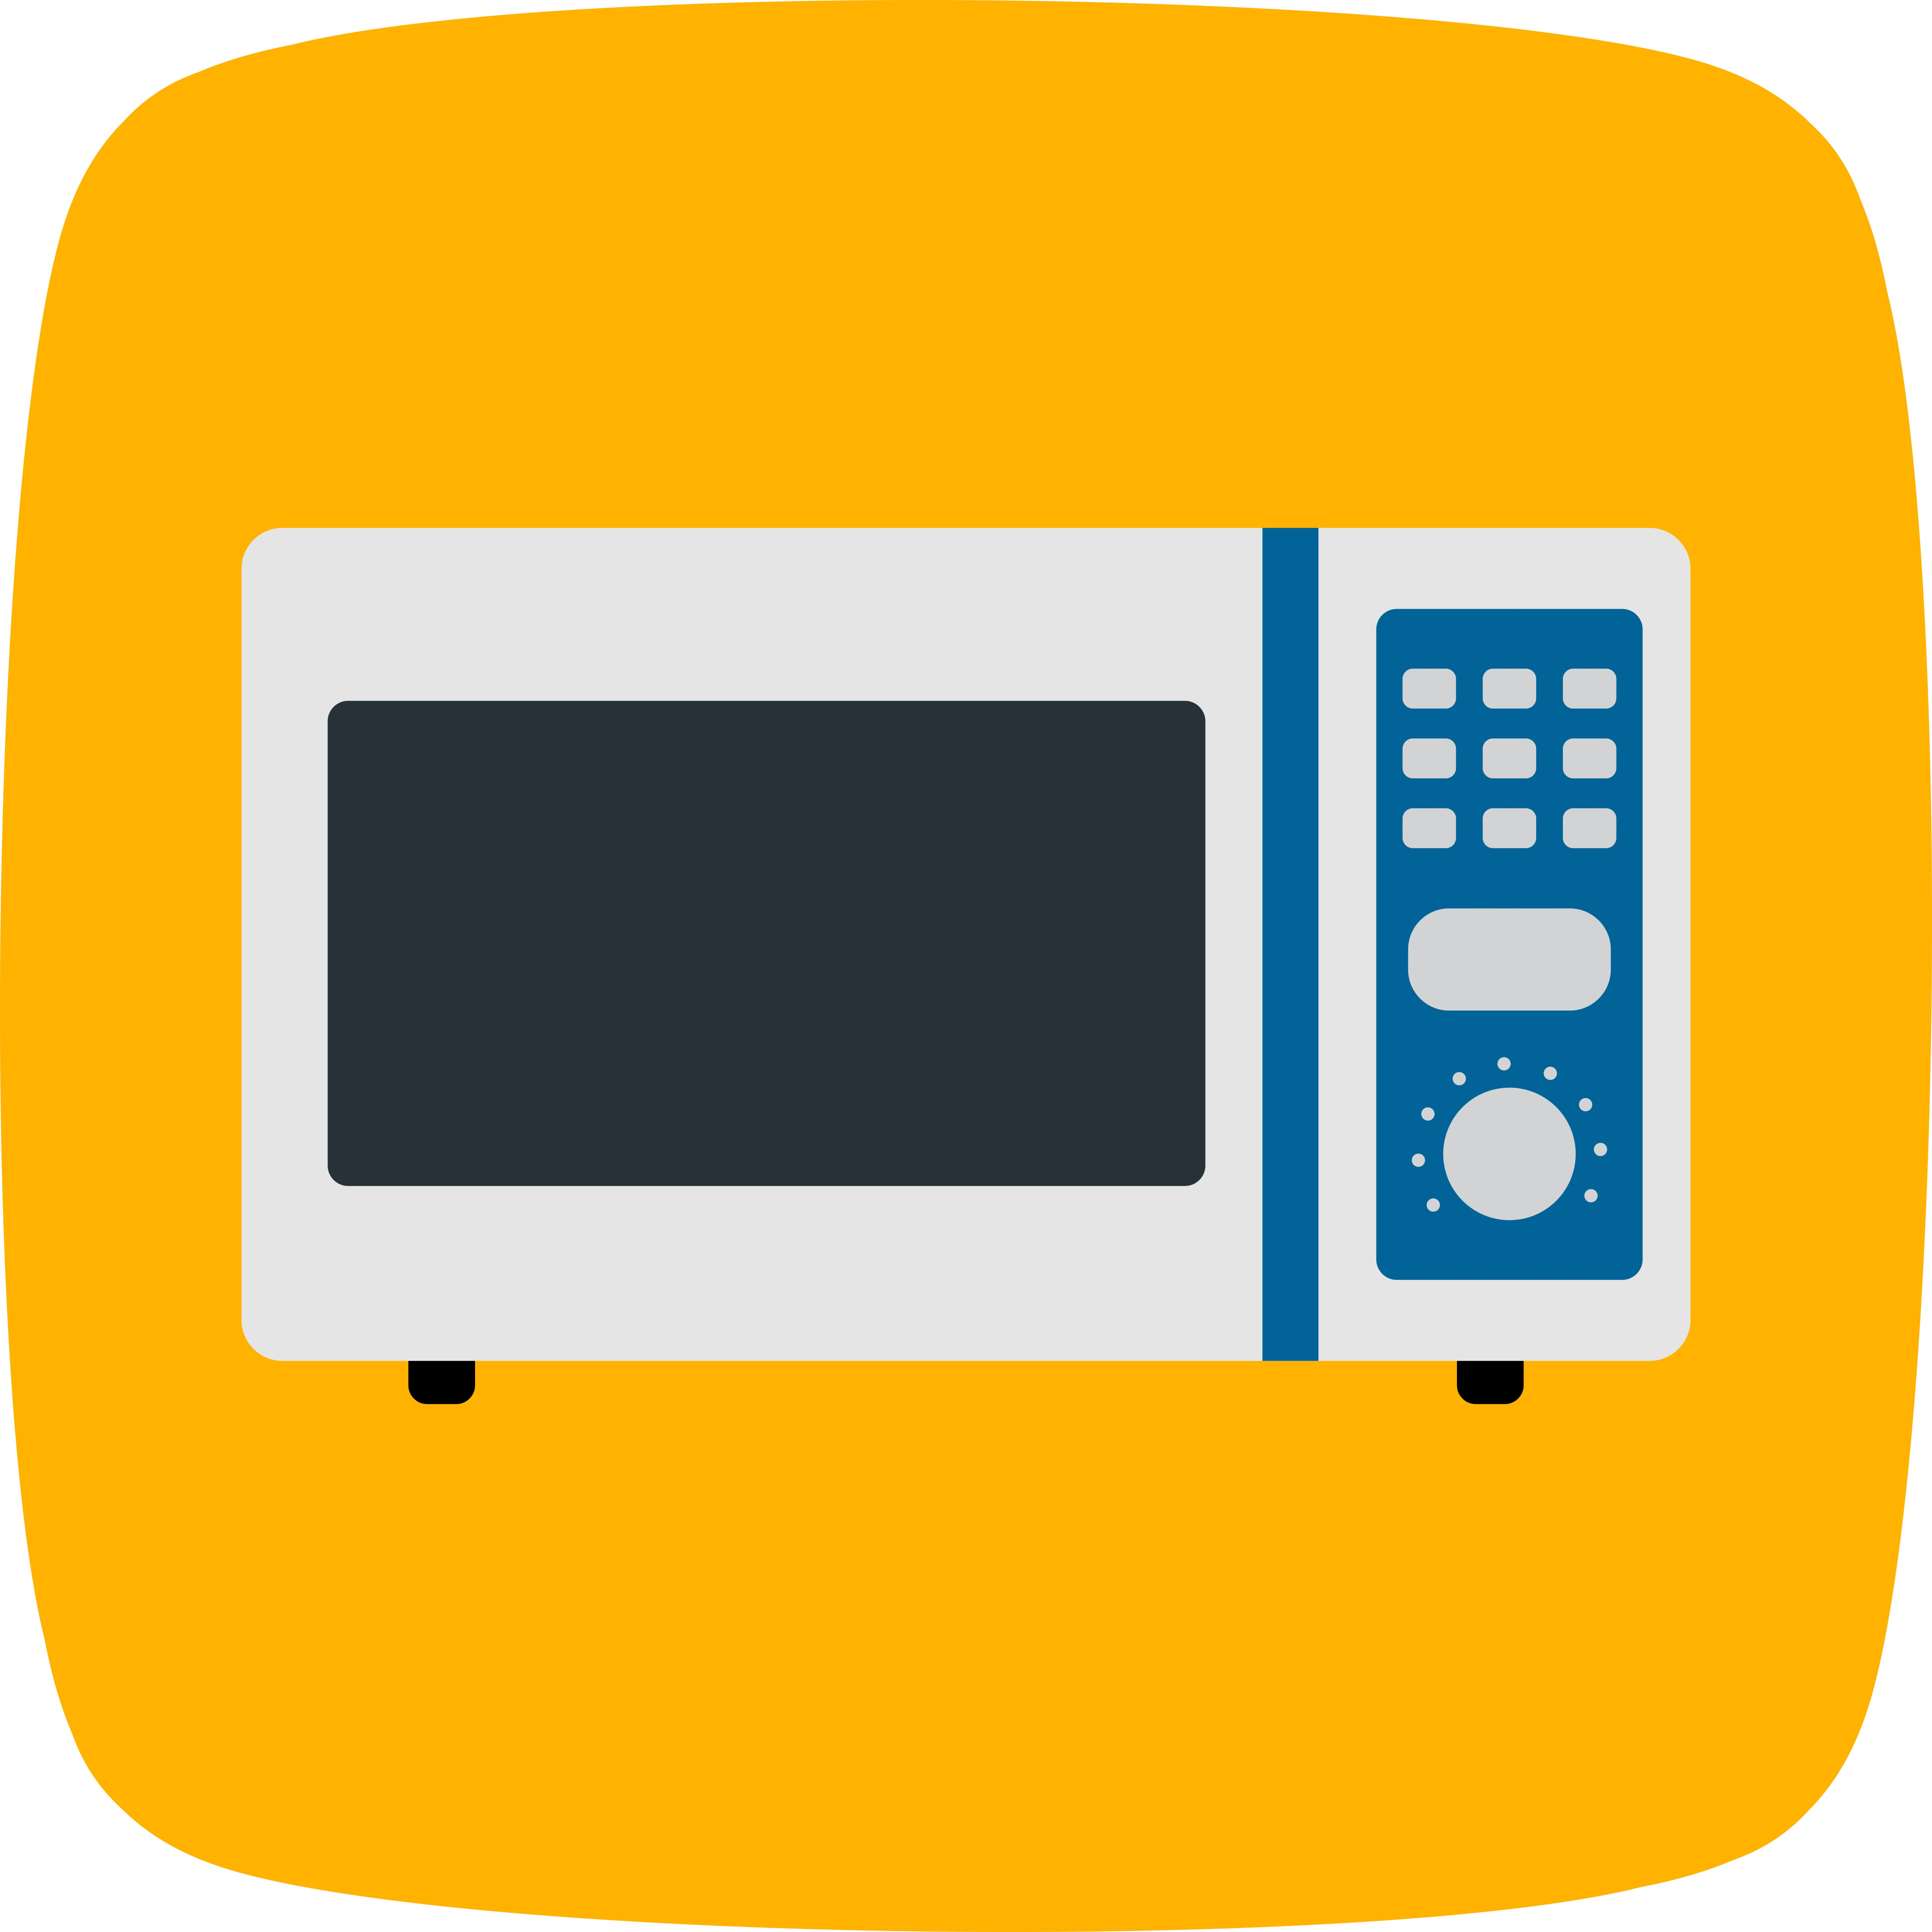 Microwave Oven Vector Icon Download Free Vector Art